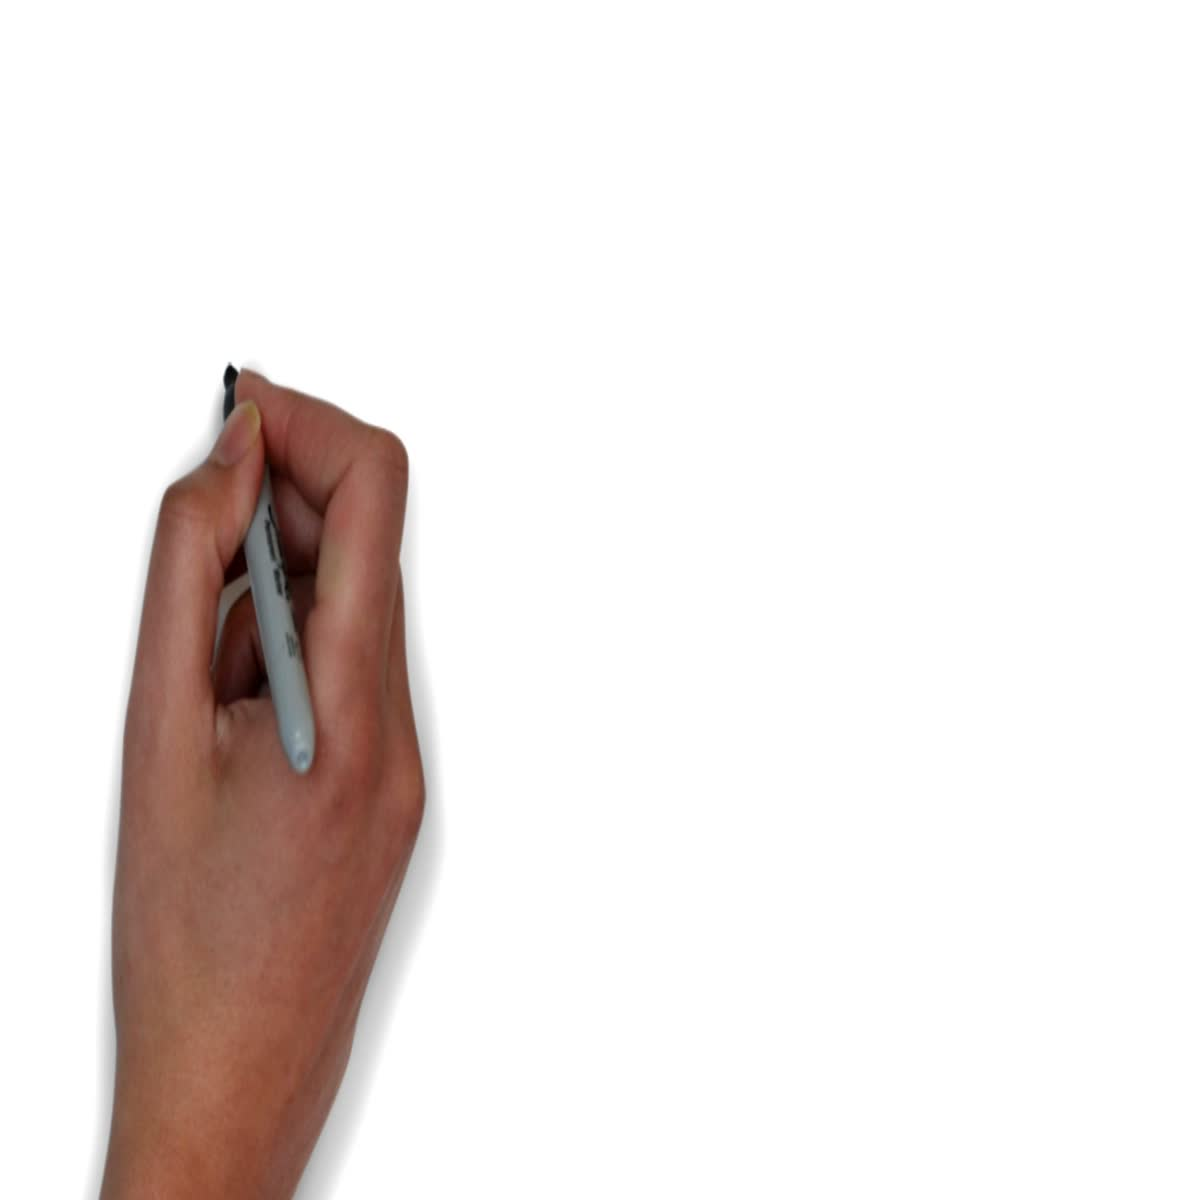 I will create whiteboard animation video with voiceover